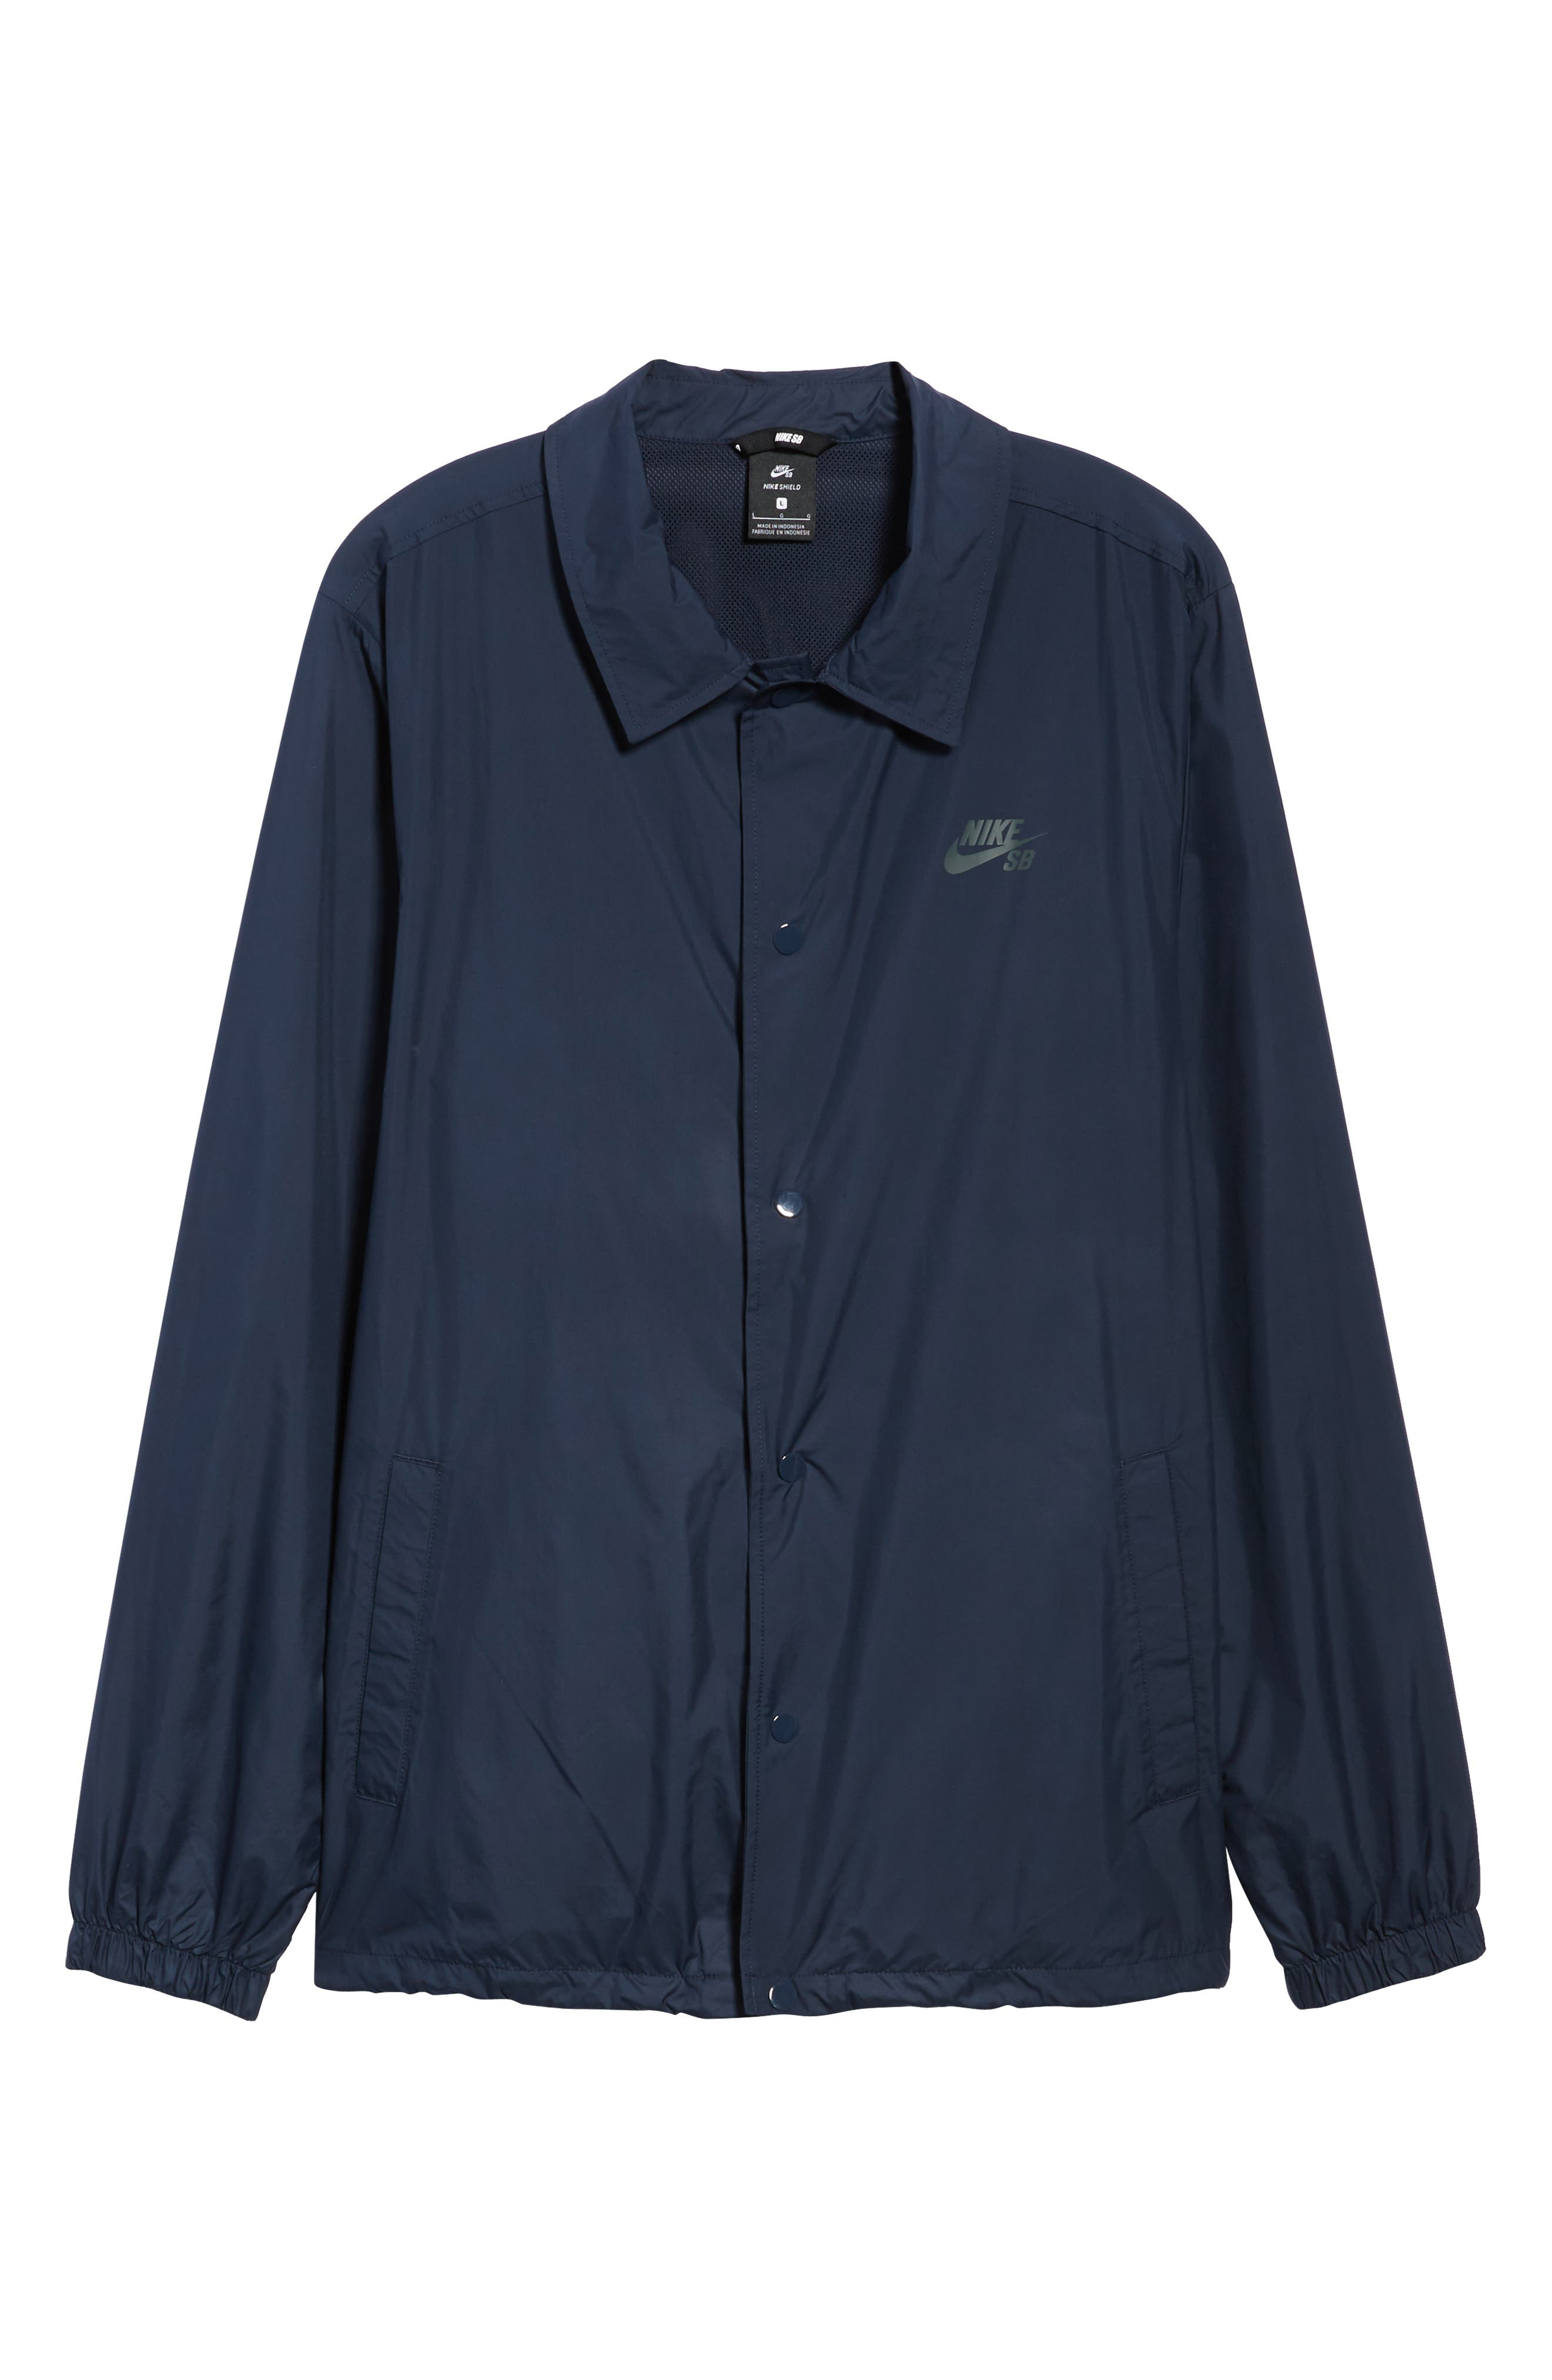 SB Shield Coach's Jacket,                             Alternate thumbnail 6, color,                             OBSIDIAN/ ANTHRACITE